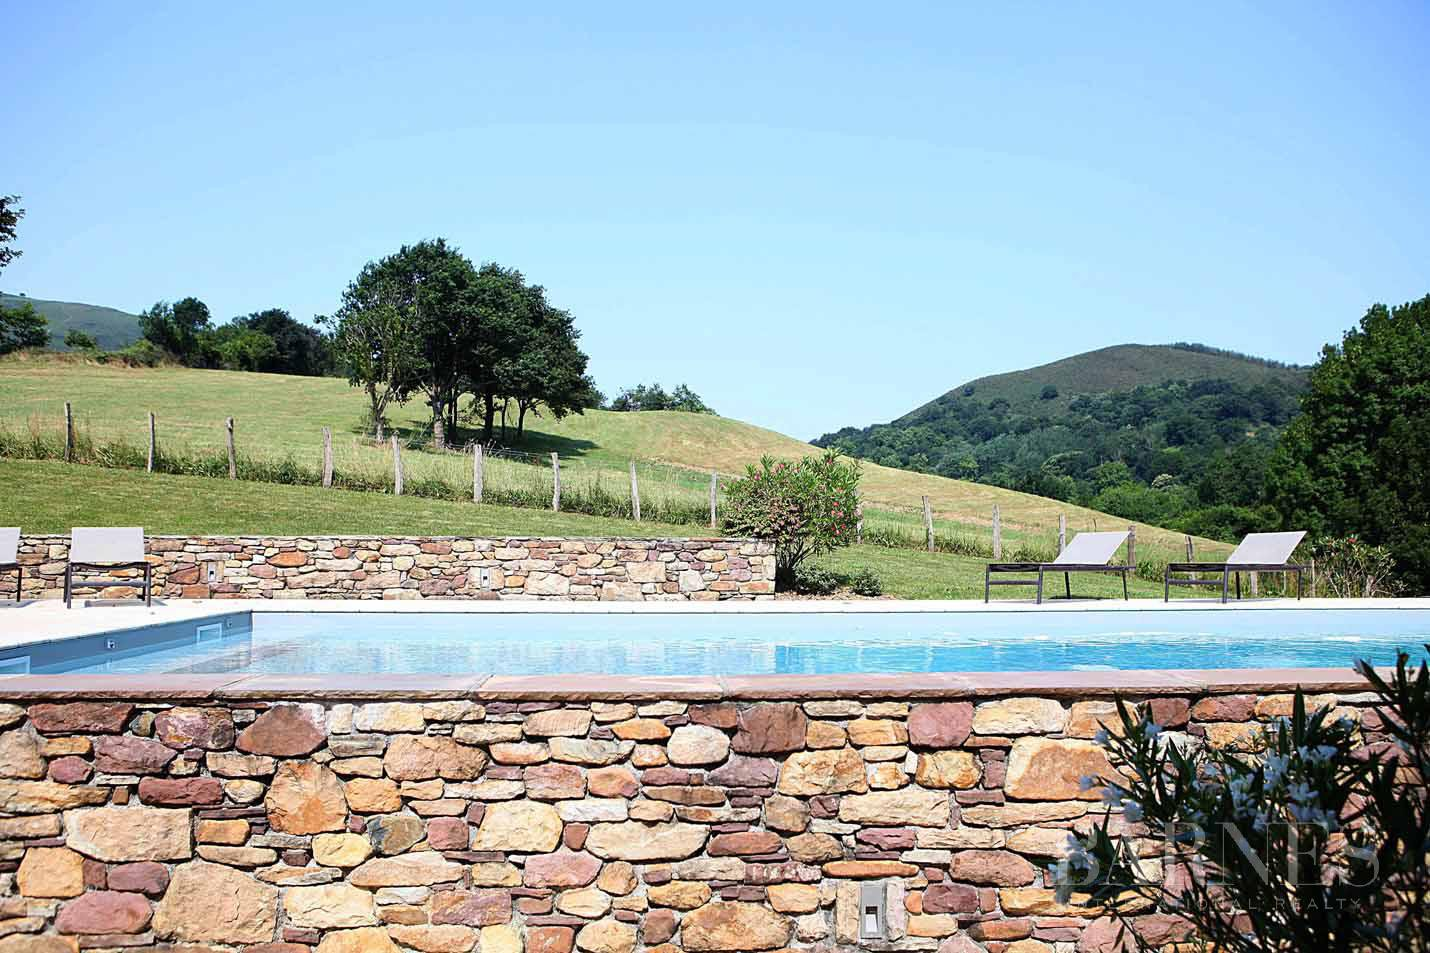 SARE, 20 MINUTES FROM SAINT JEAN DE LUZ, BASQUE STYLE FARMHOUSE WITH HEATED POOL, PANORAMIC MOUNTAIN VIEW picture 6